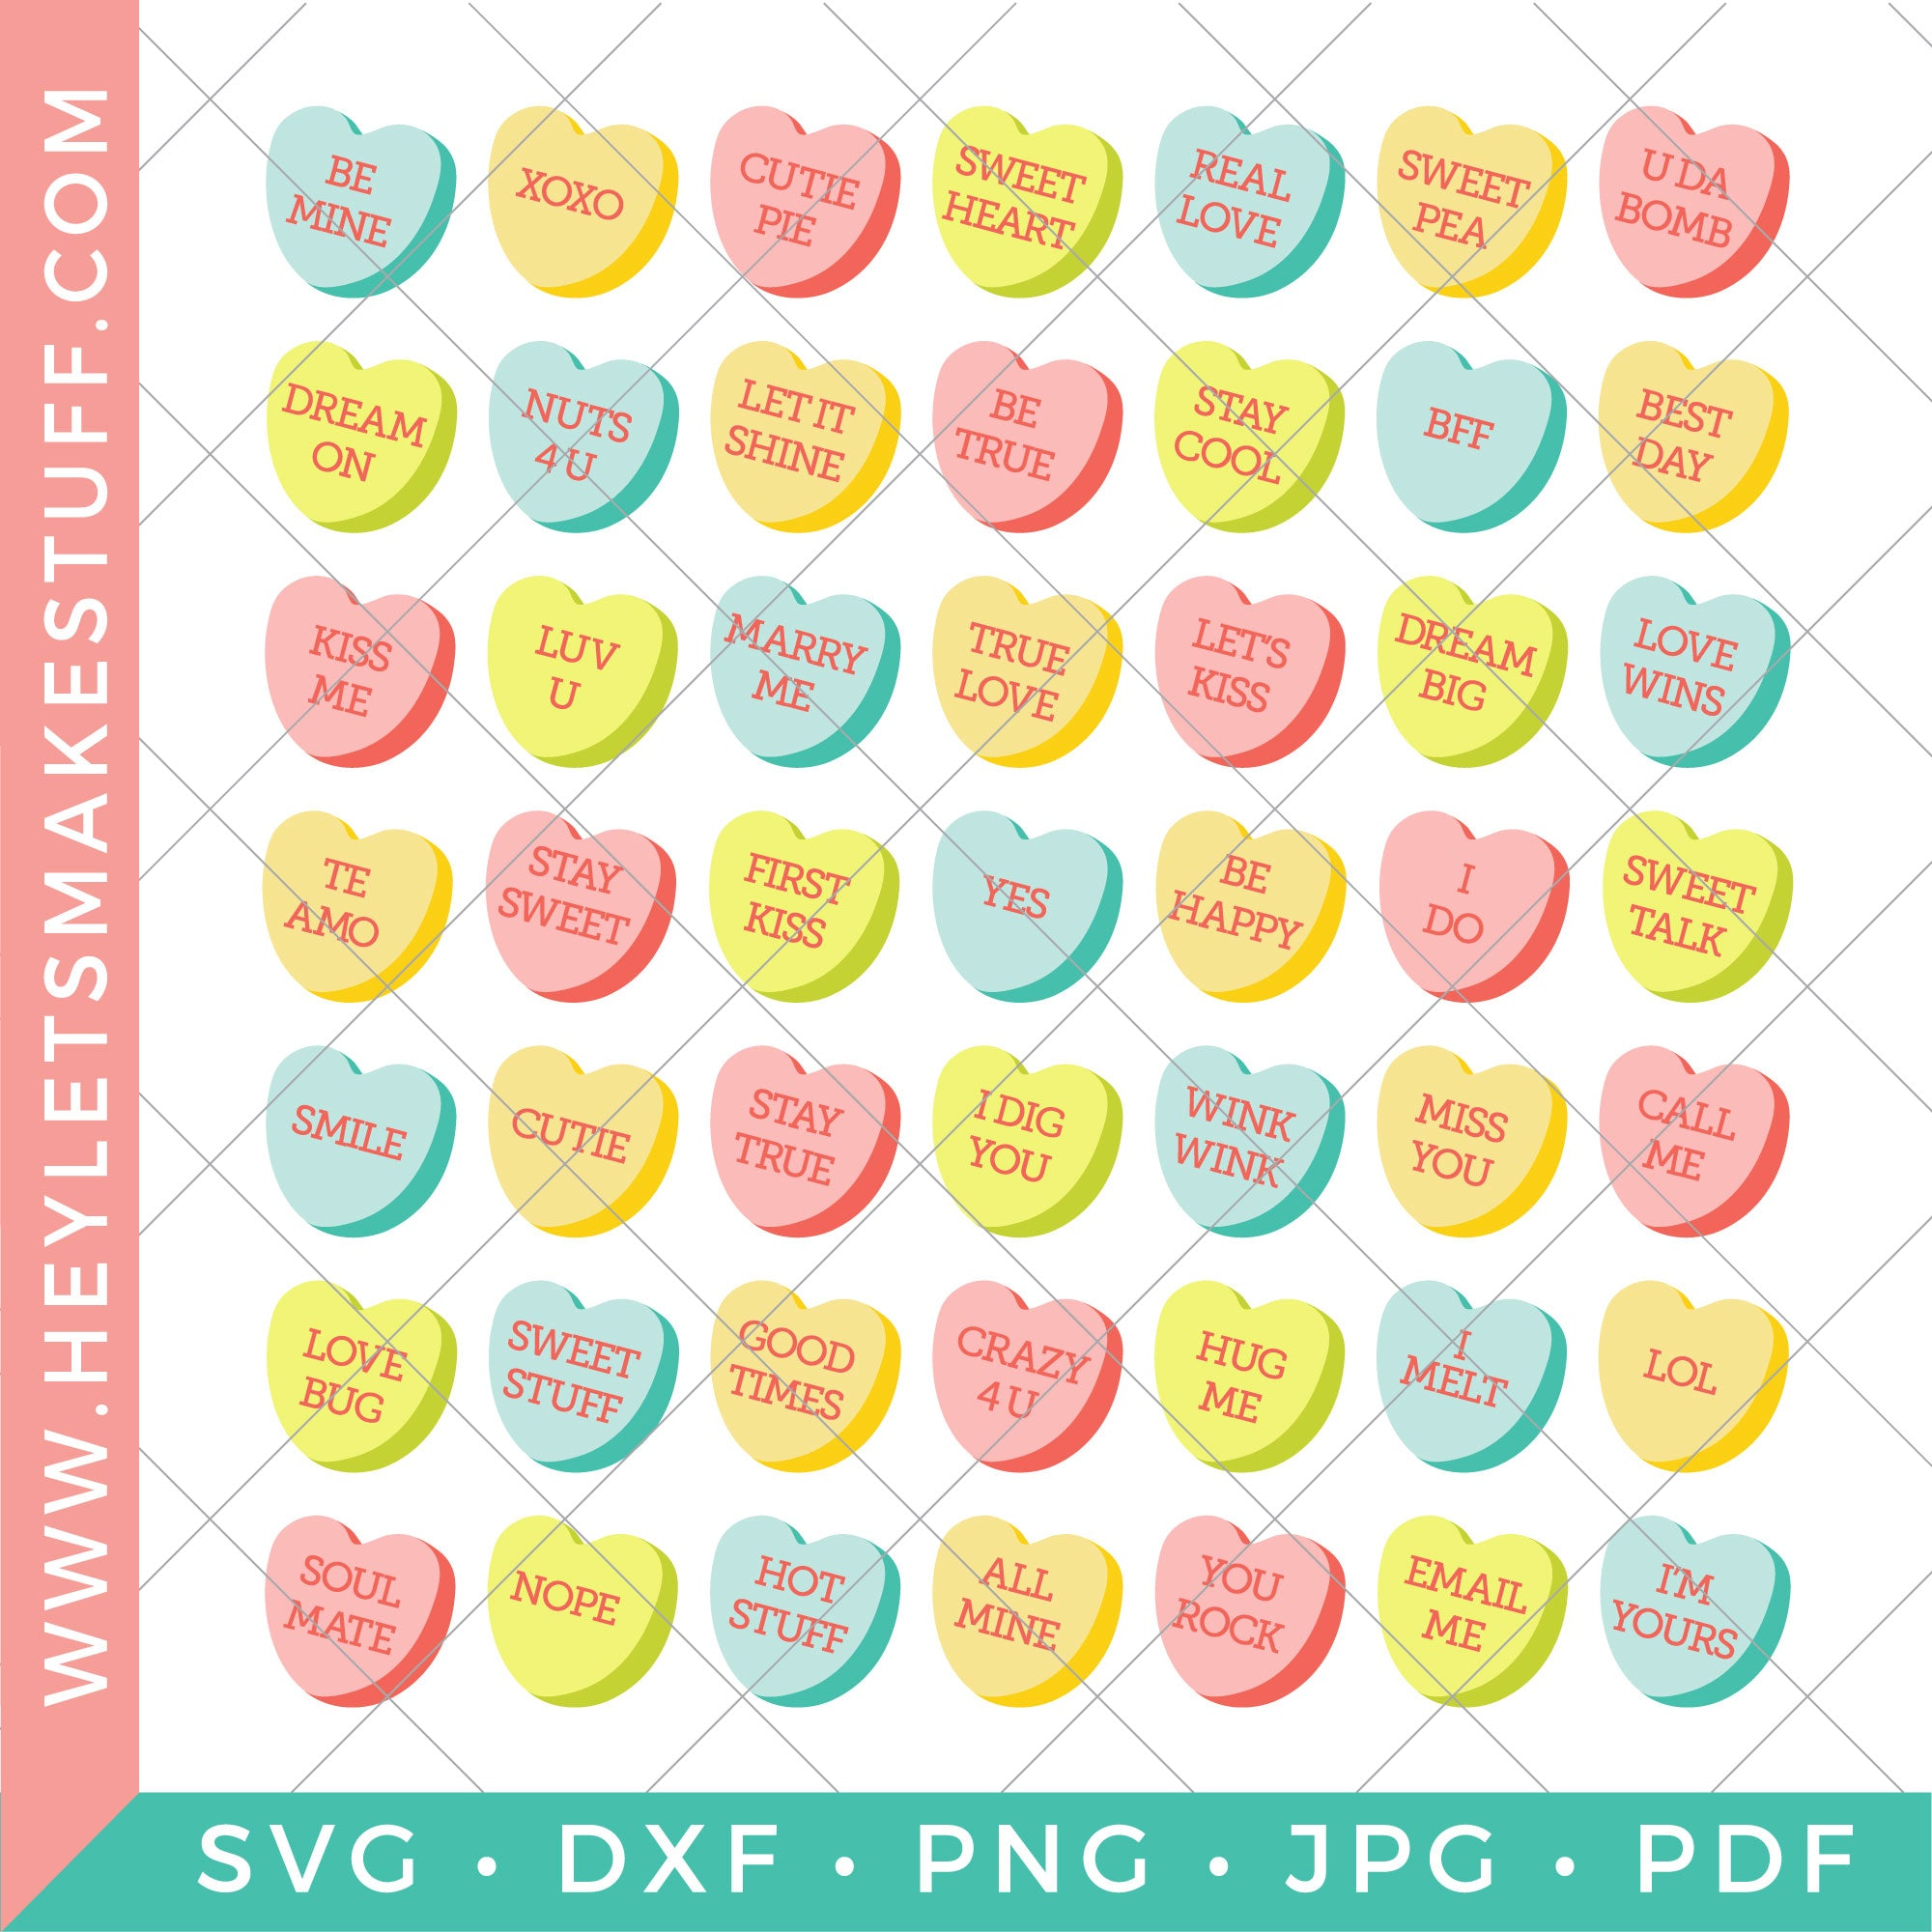 Conversation Candy Hearts Valentine's Day Clip Art by Pink Cat Studio